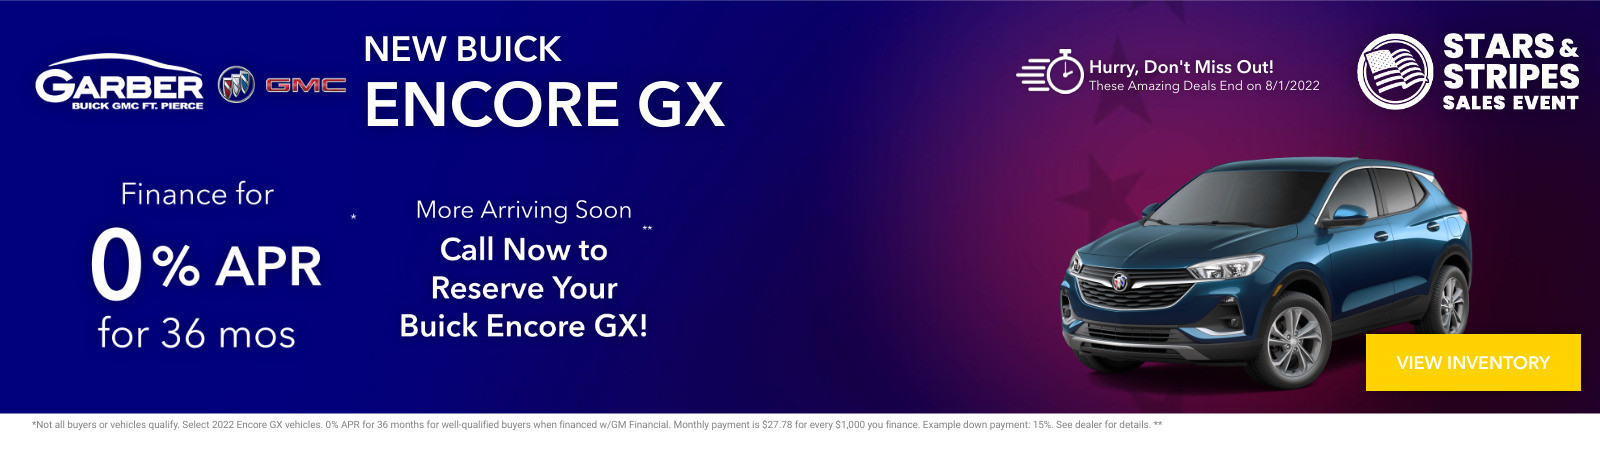 New Buick Encore GX Current Deals and Offers in Fort Pierce, FL